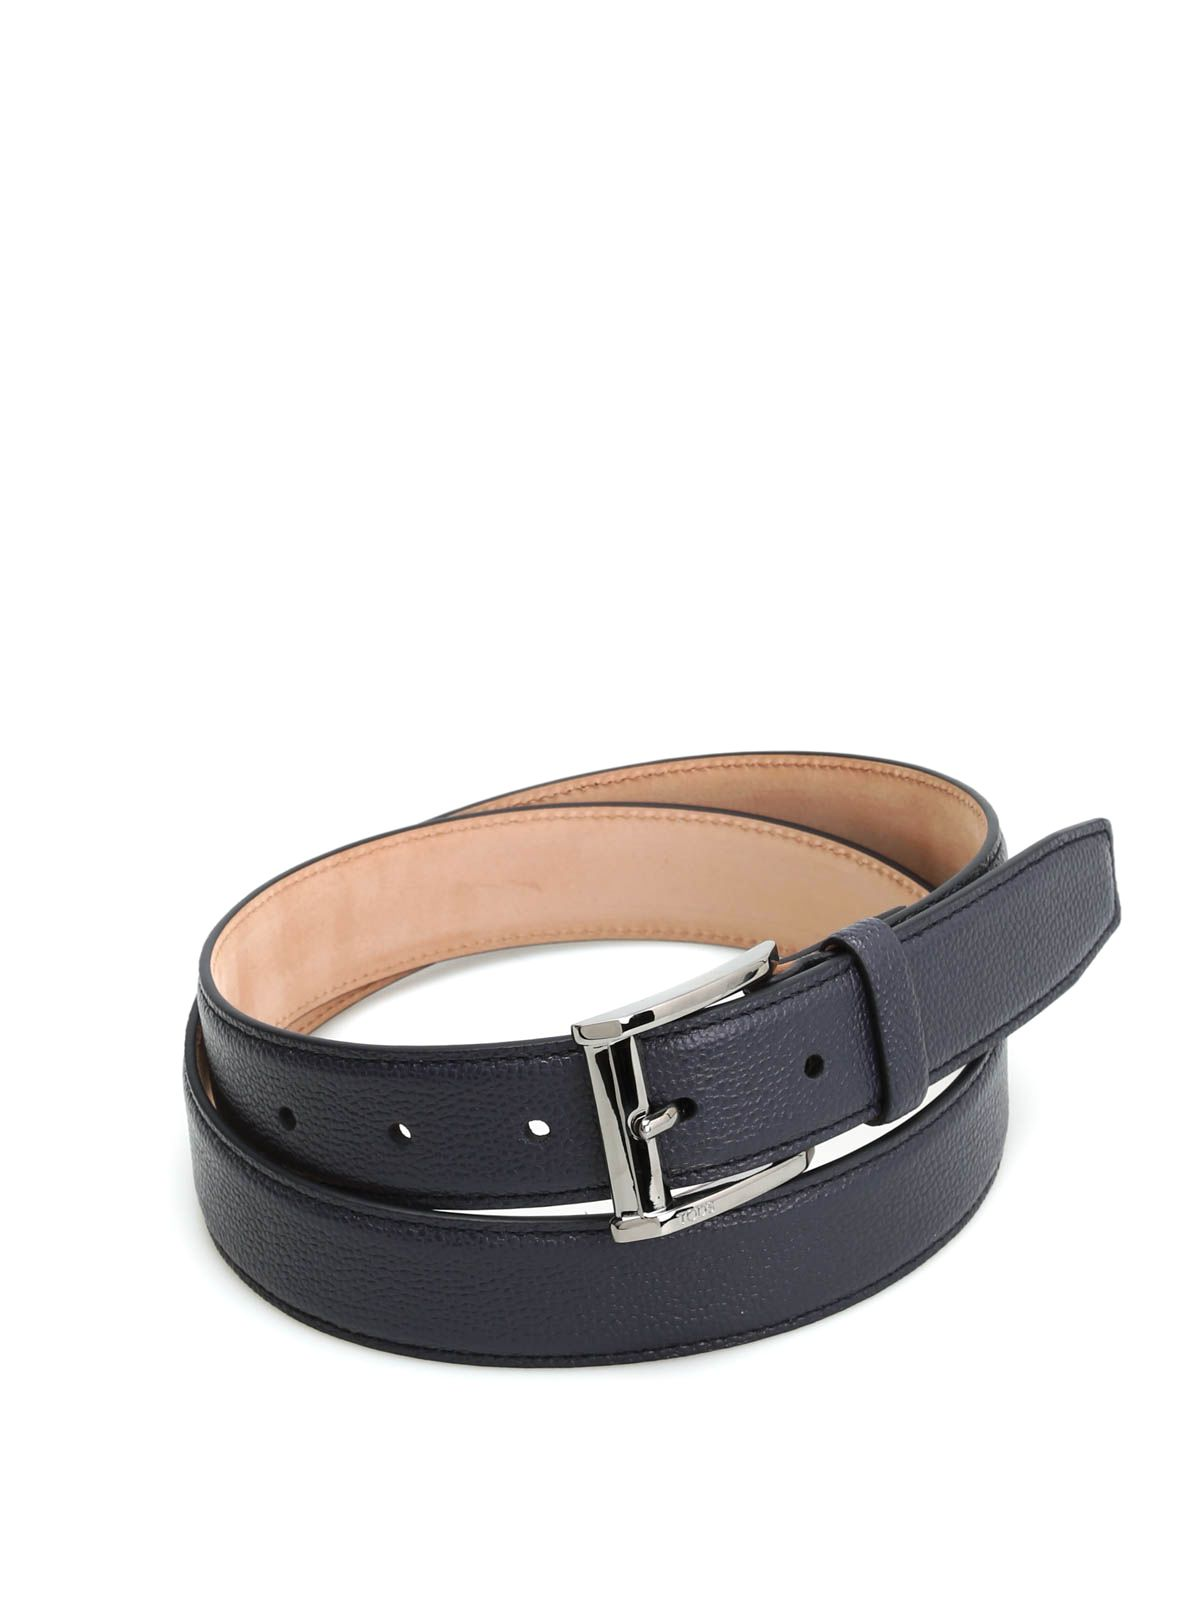 Tods Squared Buckle Belt